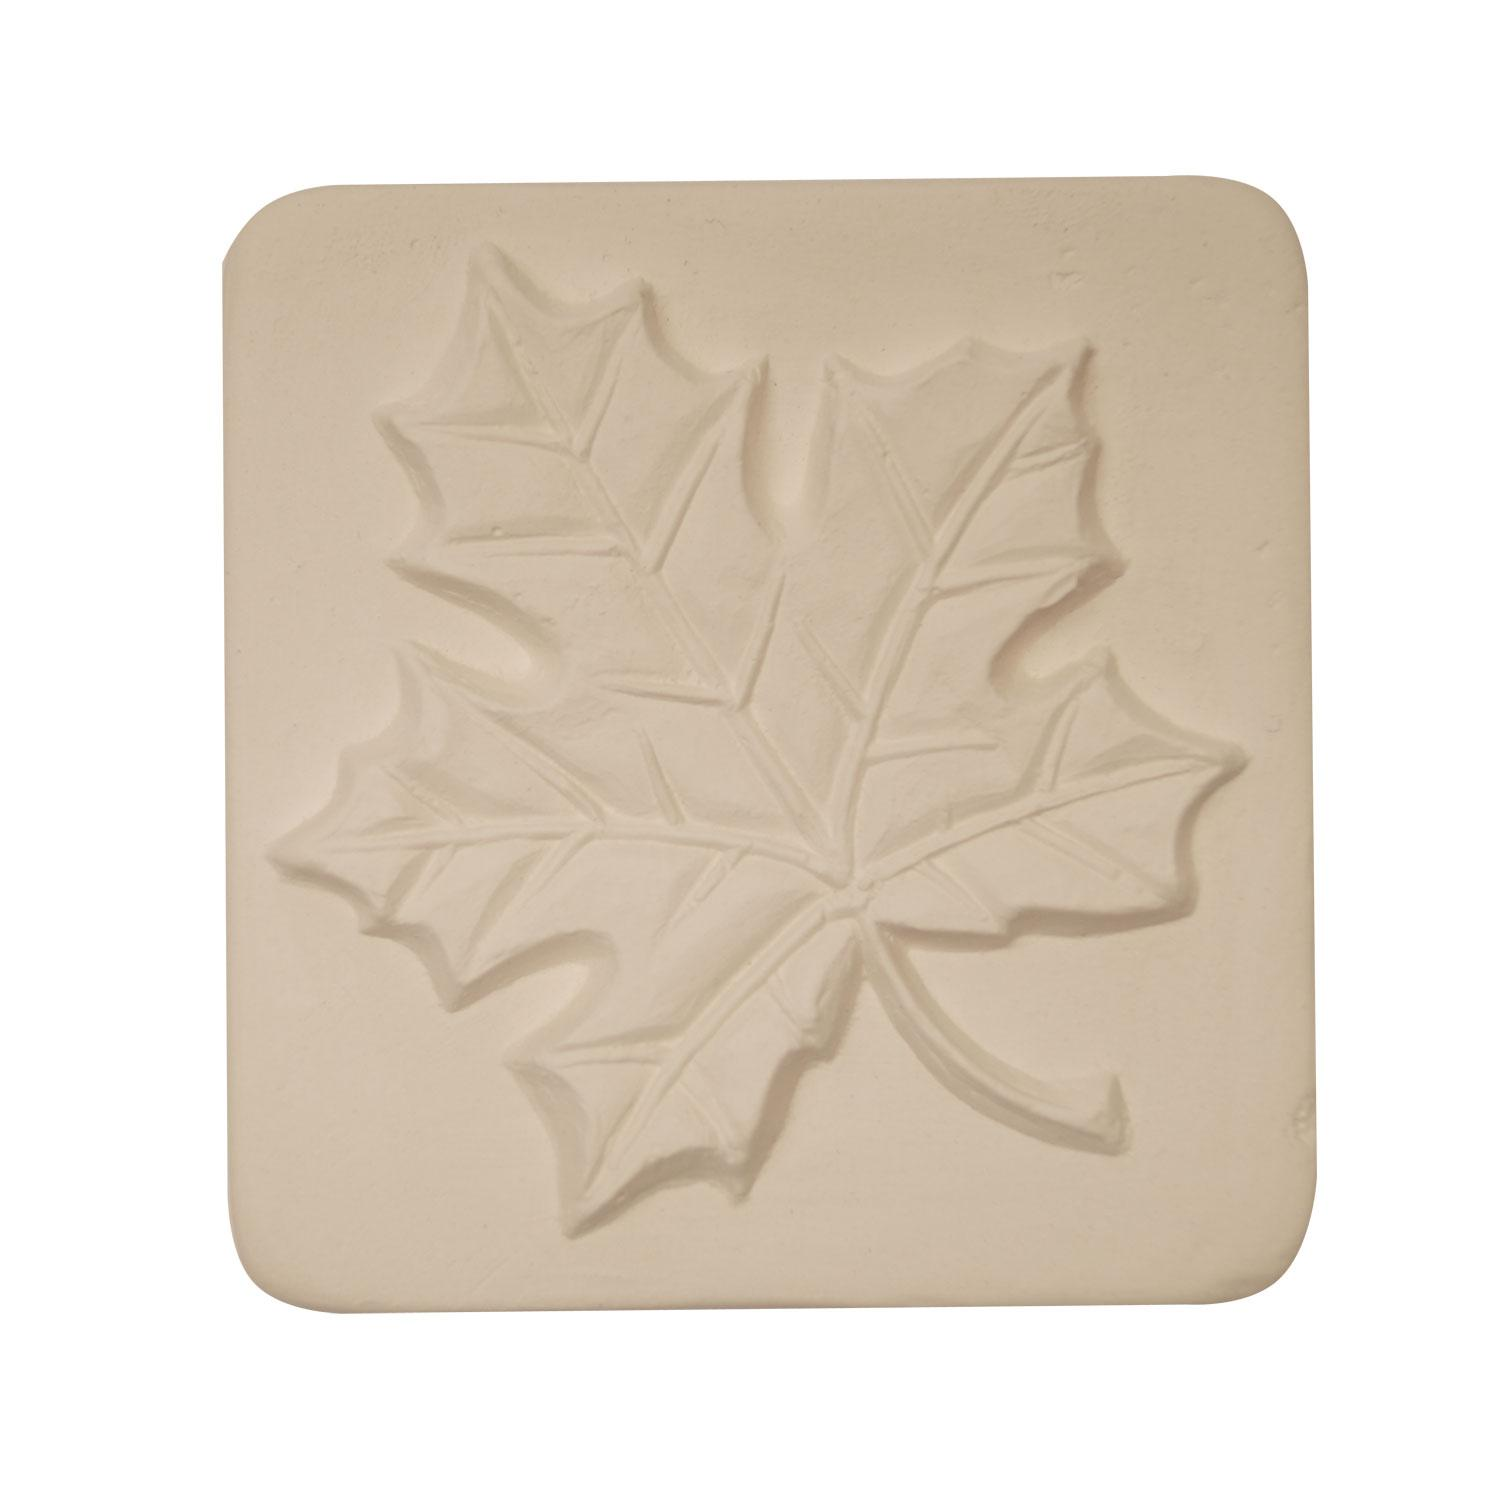 Delphi Studio Maple Leaf Impression Tile